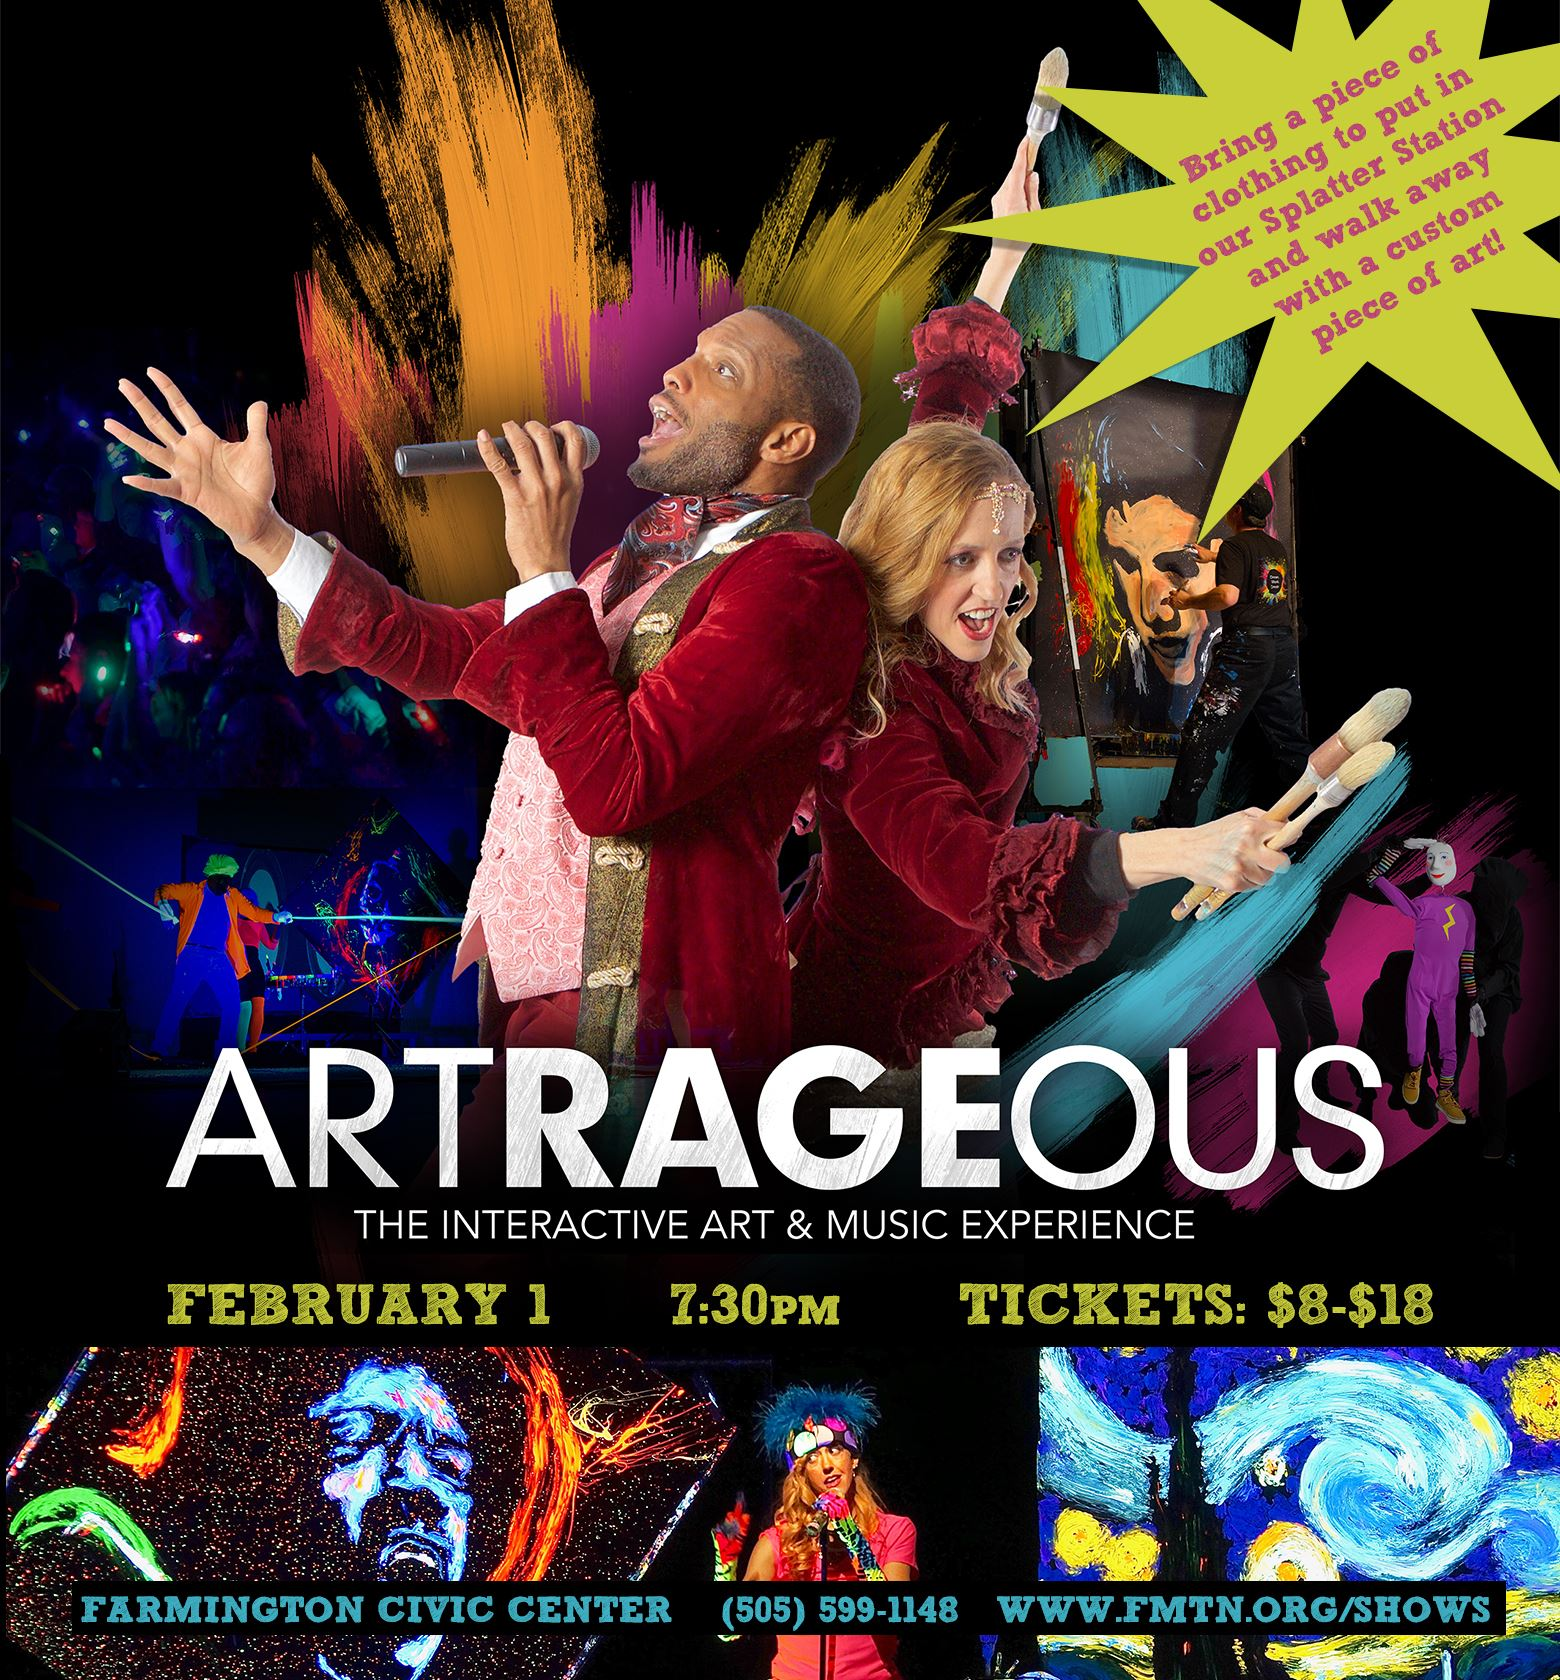 ARTrageous show at Farmington Civic Center